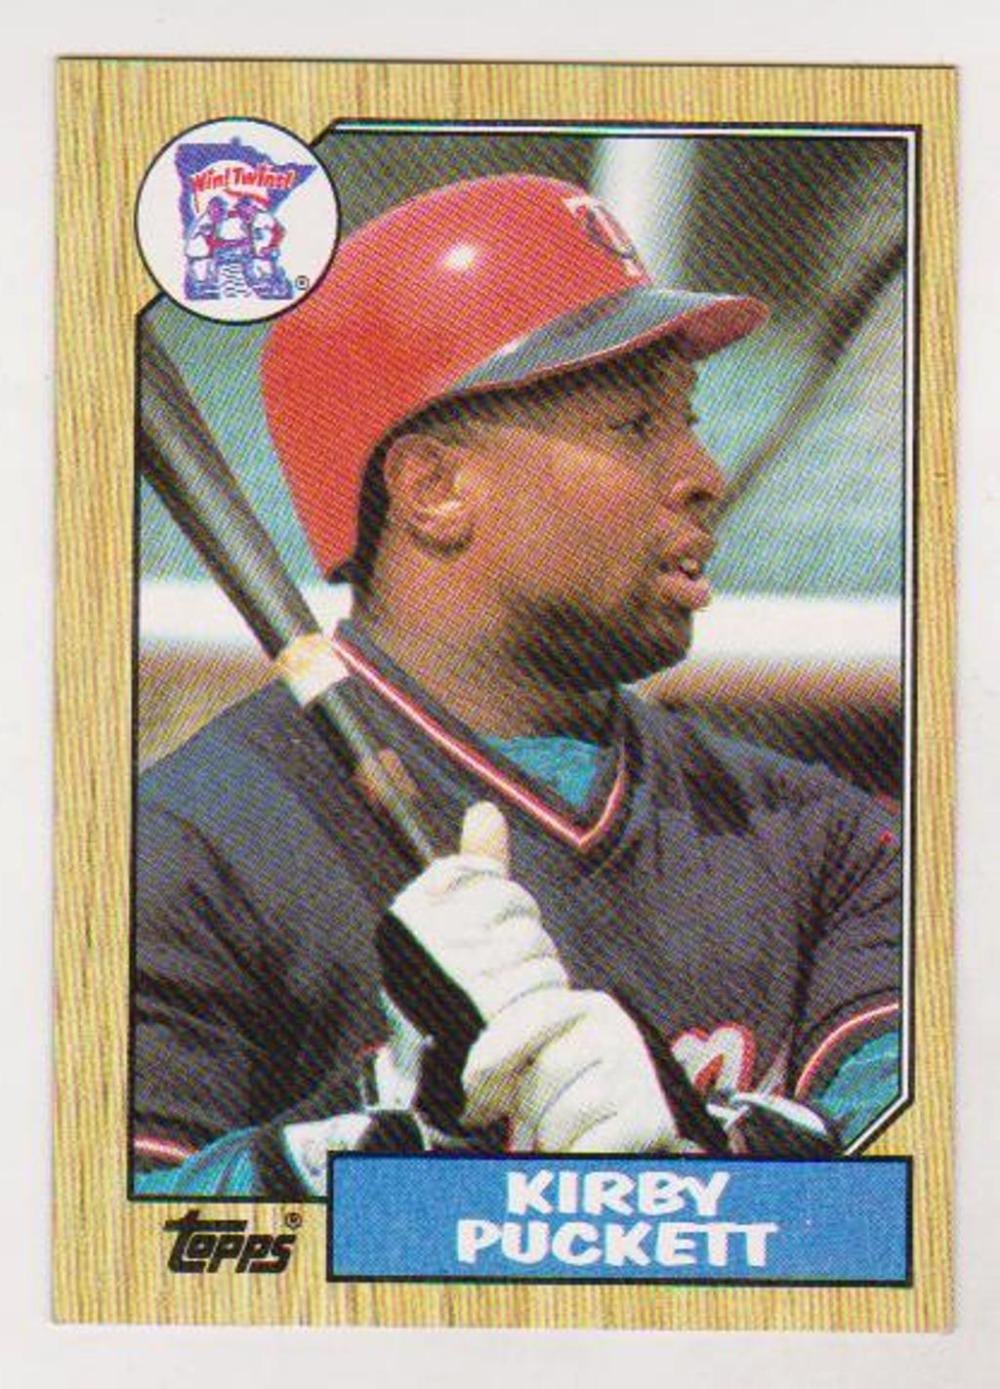 Error - Kirby Puckett 1987 Topps Wrong Back Error Card